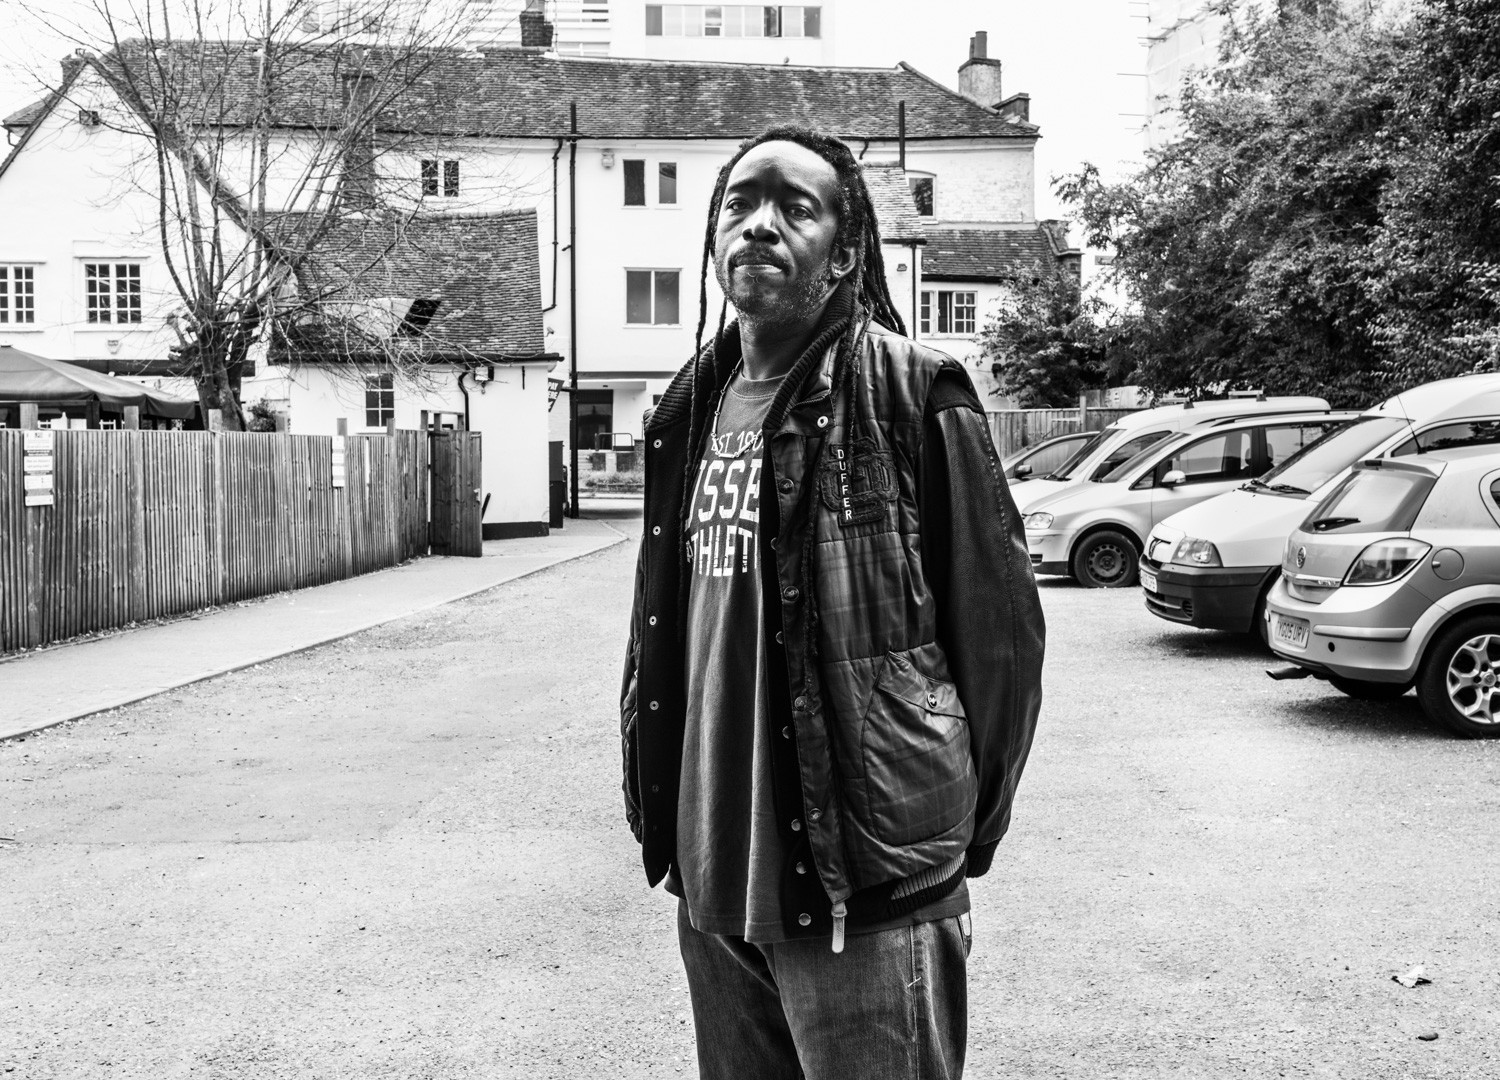 David Goldblatt, Richi Ellis served 11 years after being convicted of joint enterprise for a murder that happened in this yard. He was 600 meters away at the time of the victim's death. Harrow, Middlesex, 17 September 2014